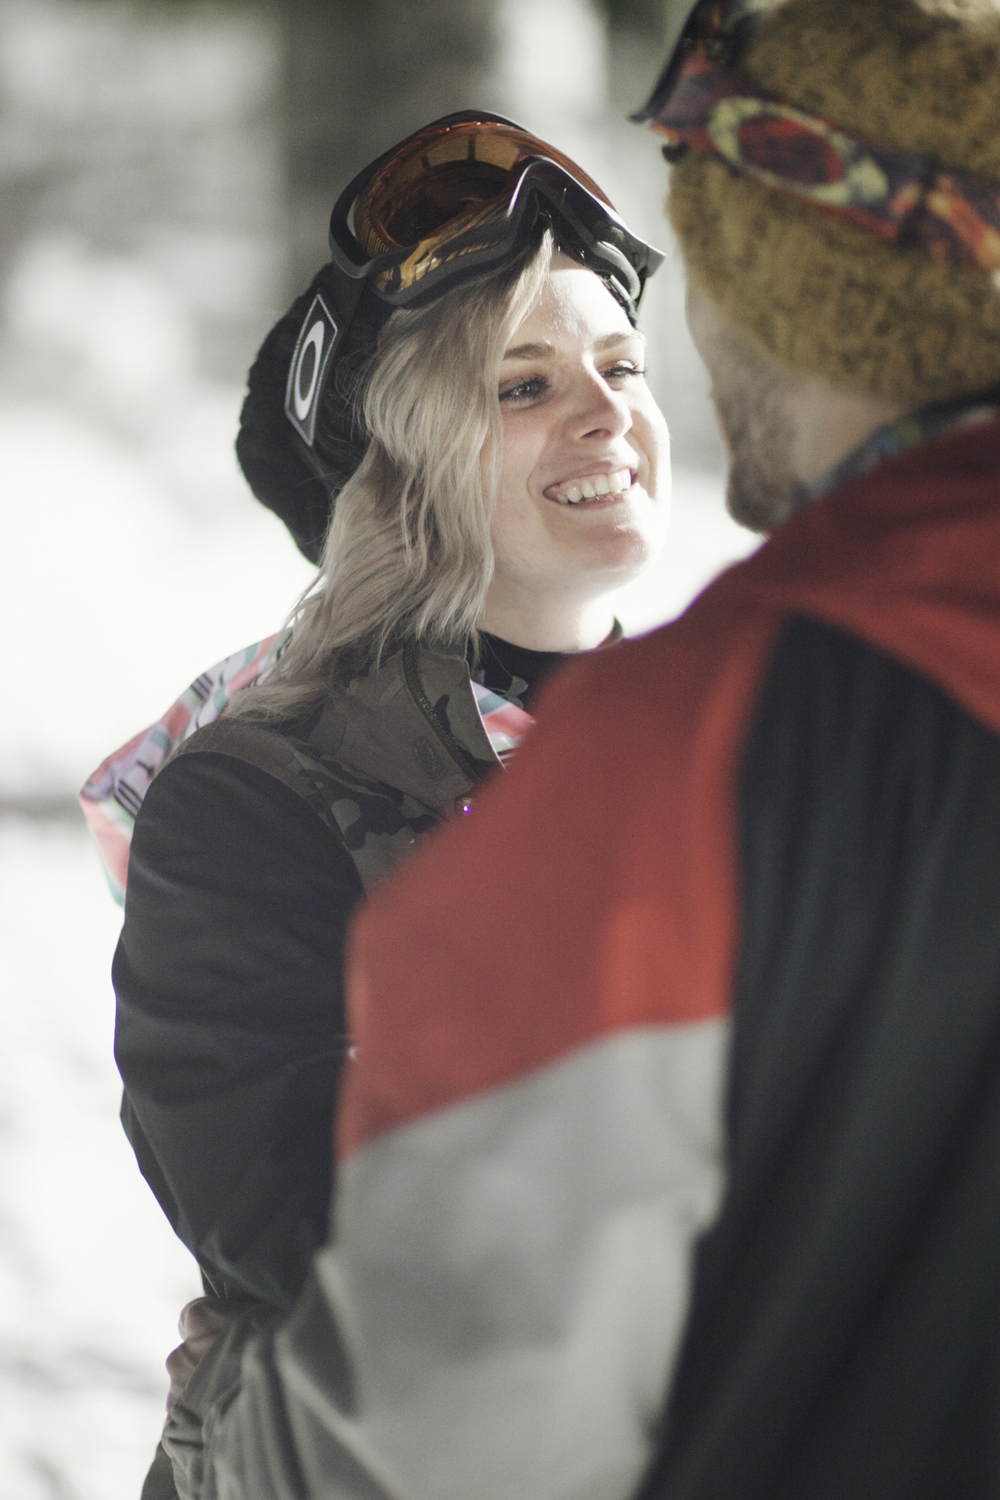 004+outlive+creative+oregon+best+engagment+shoot+location+ski+bowl+skyler+katie.jpg